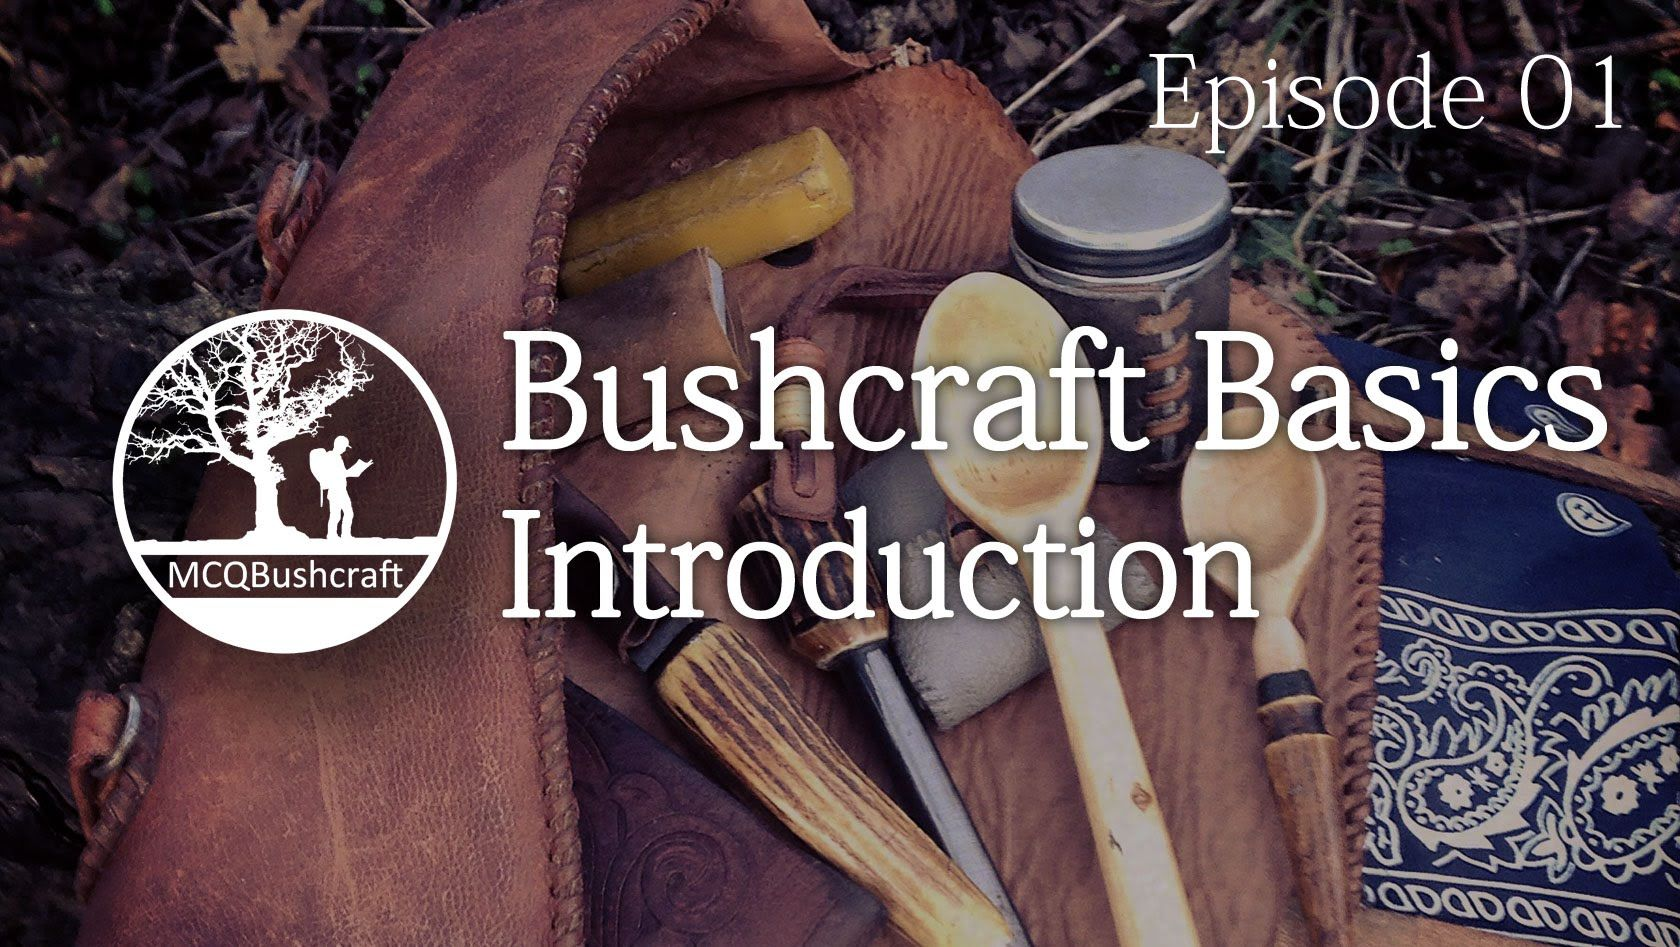 Bushcraft Basics is a training series for beginner Bushcraft enthusiasts who want to build a reliable set of gear for the outdoors...